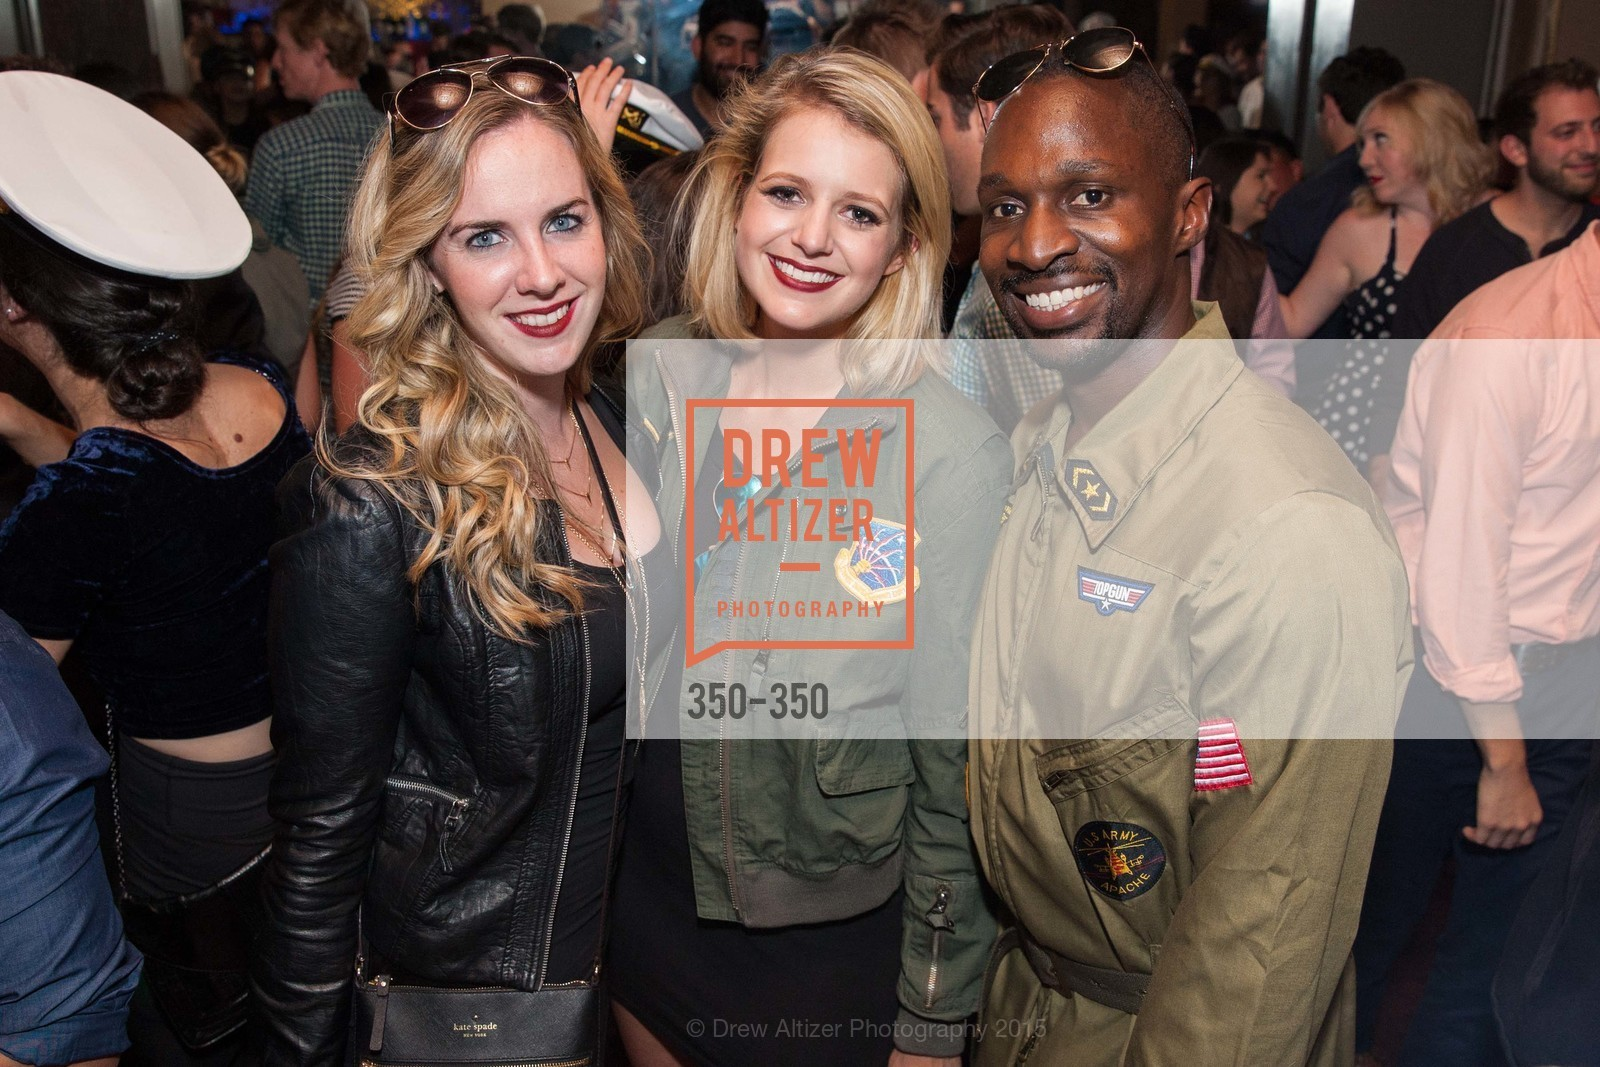 Laura Moyer, Maggie McCarthy, Kolapo Odujinrin, Spinsters of San Francisco Presents: Fleet or Flight, Mayes Oyster House. 1233 Polk St, October 9th, 2015,Drew Altizer, Drew Altizer Photography, full-service agency, private events, San Francisco photographer, photographer california